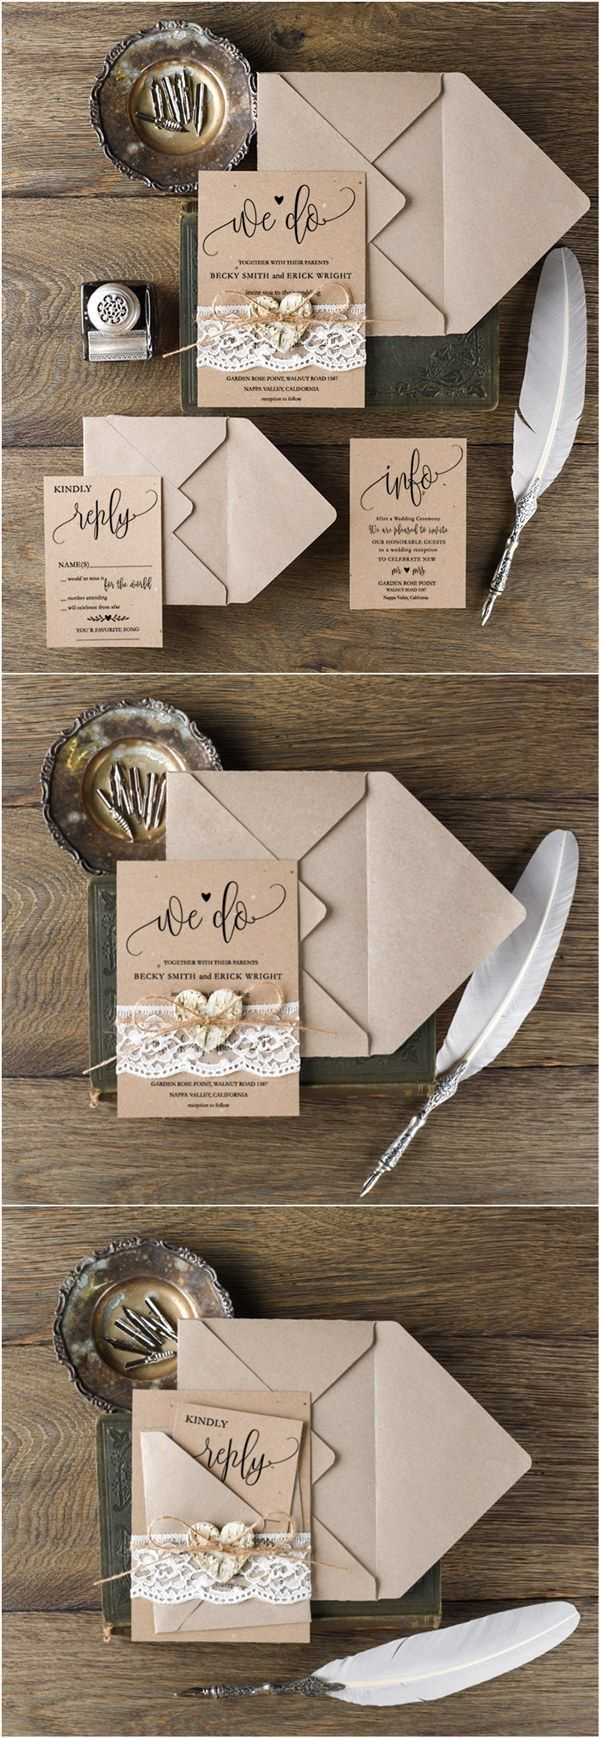 small wedding ceremony invitations%0A Rustic wedding invitations from   LOVEPolkaDots More